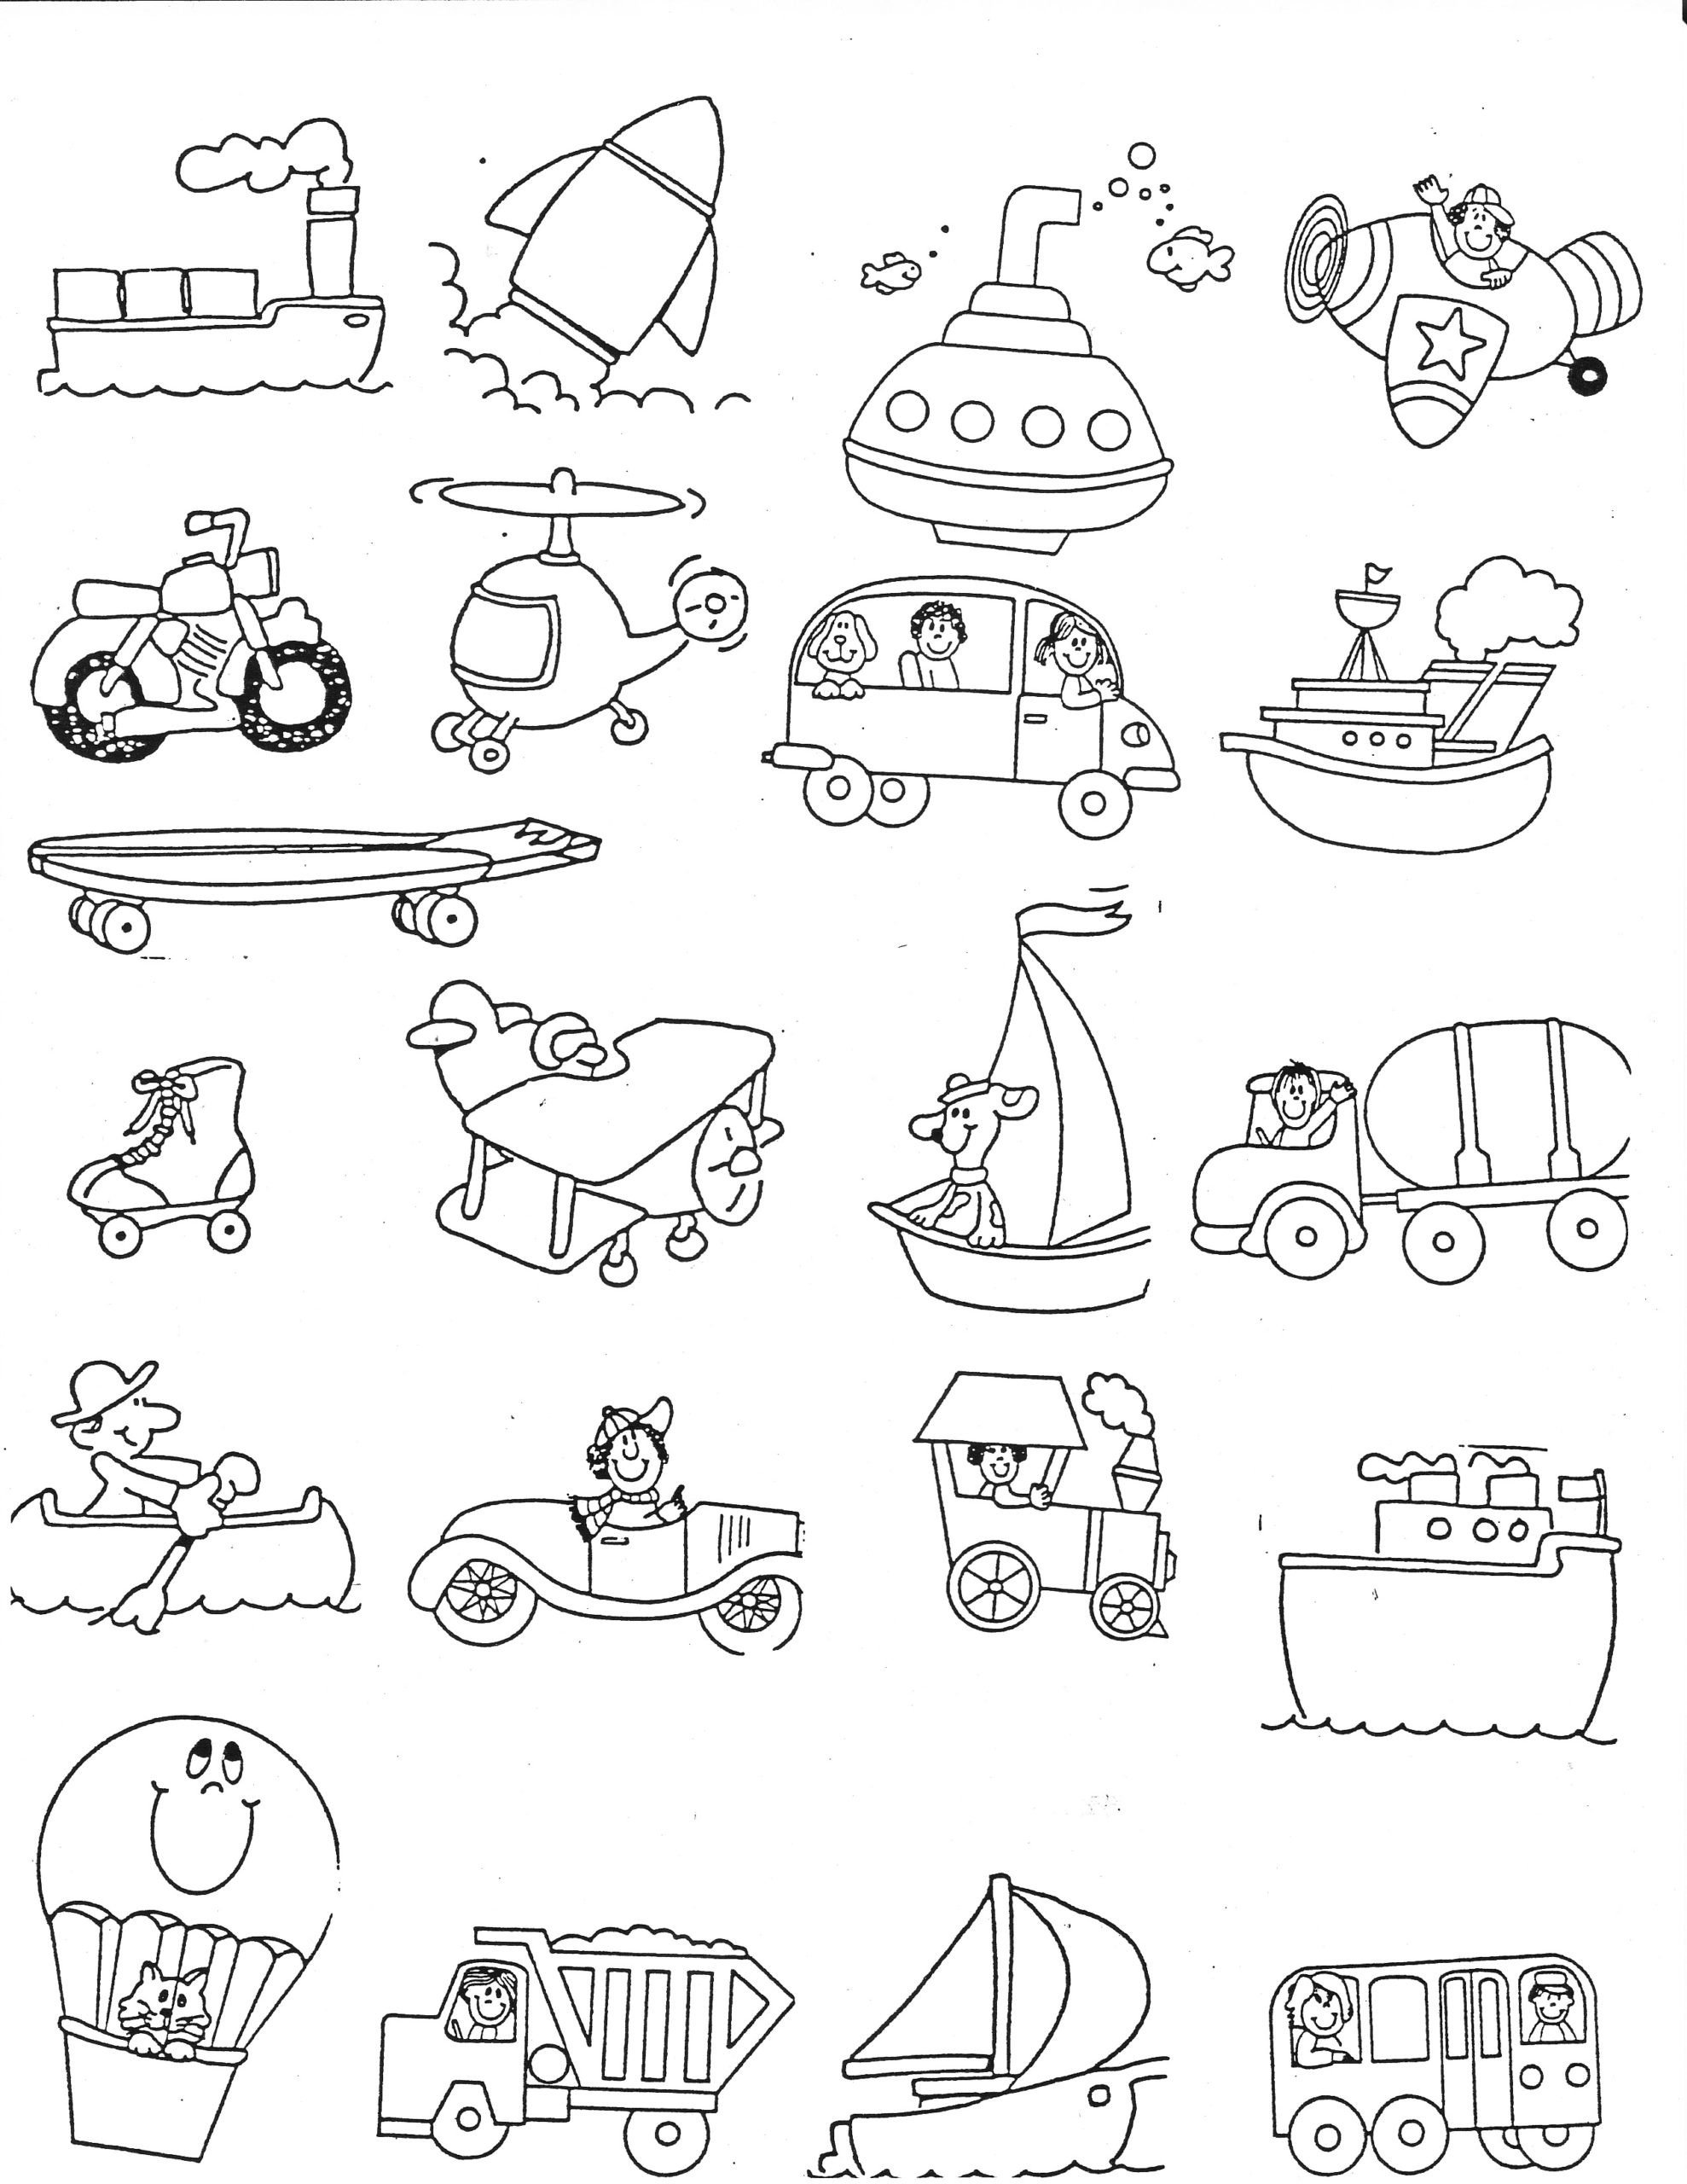 Force and Motion Kindergarten Worksheets Transportation Kindergarten Nana force and Motion Worksheets